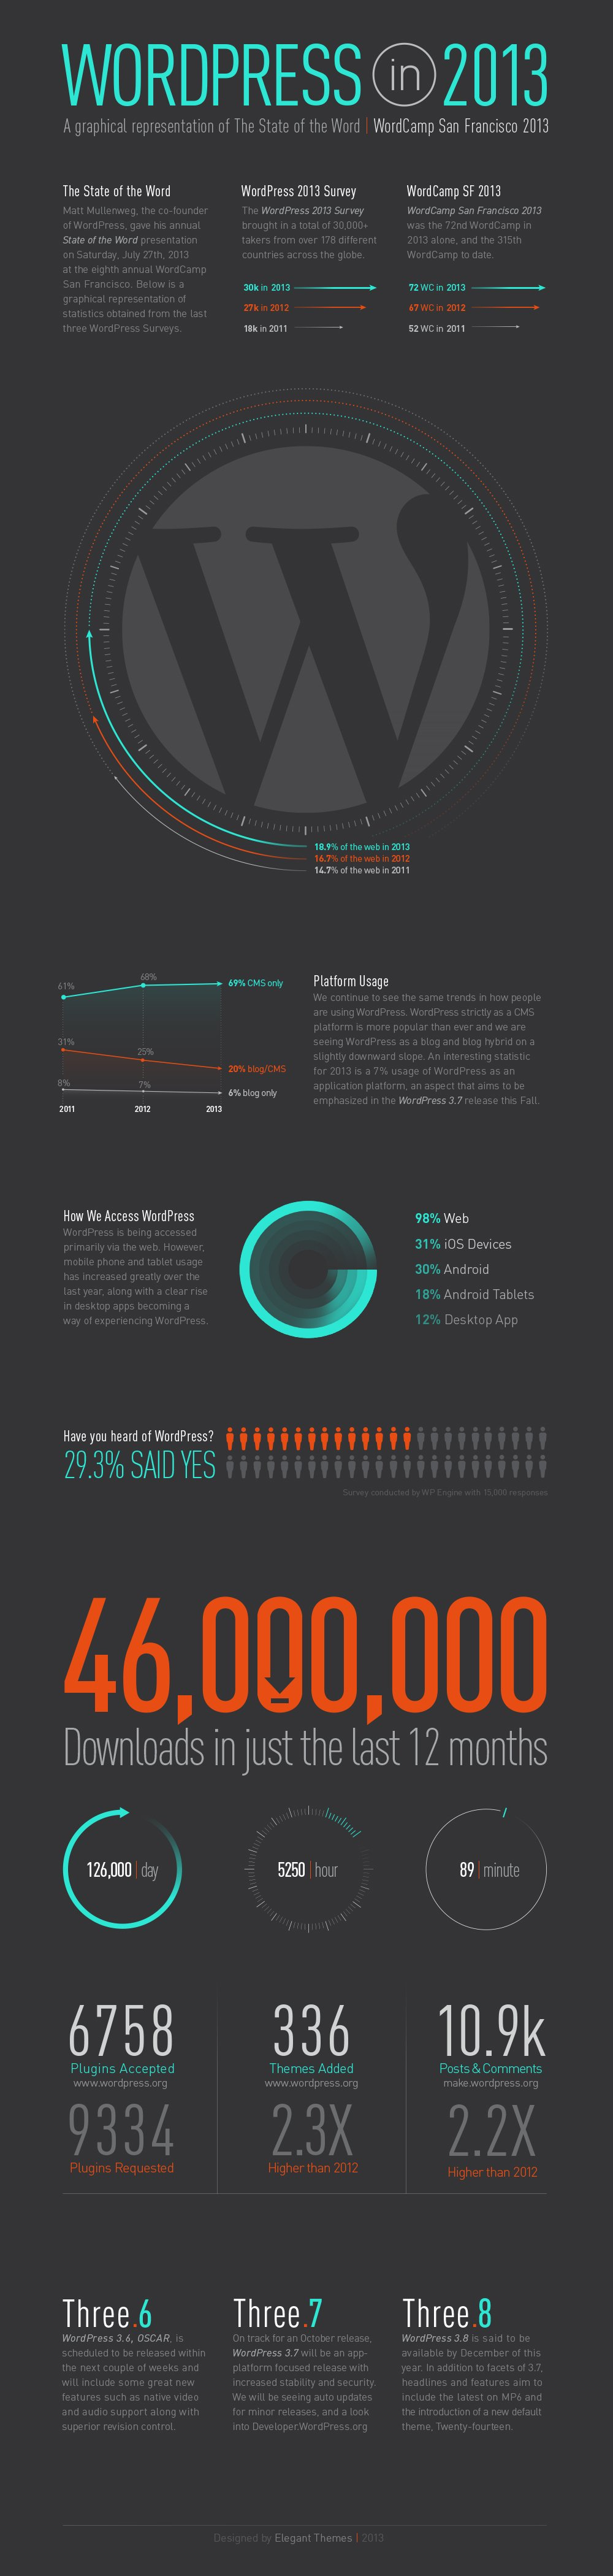 WordPress Infographic 2013